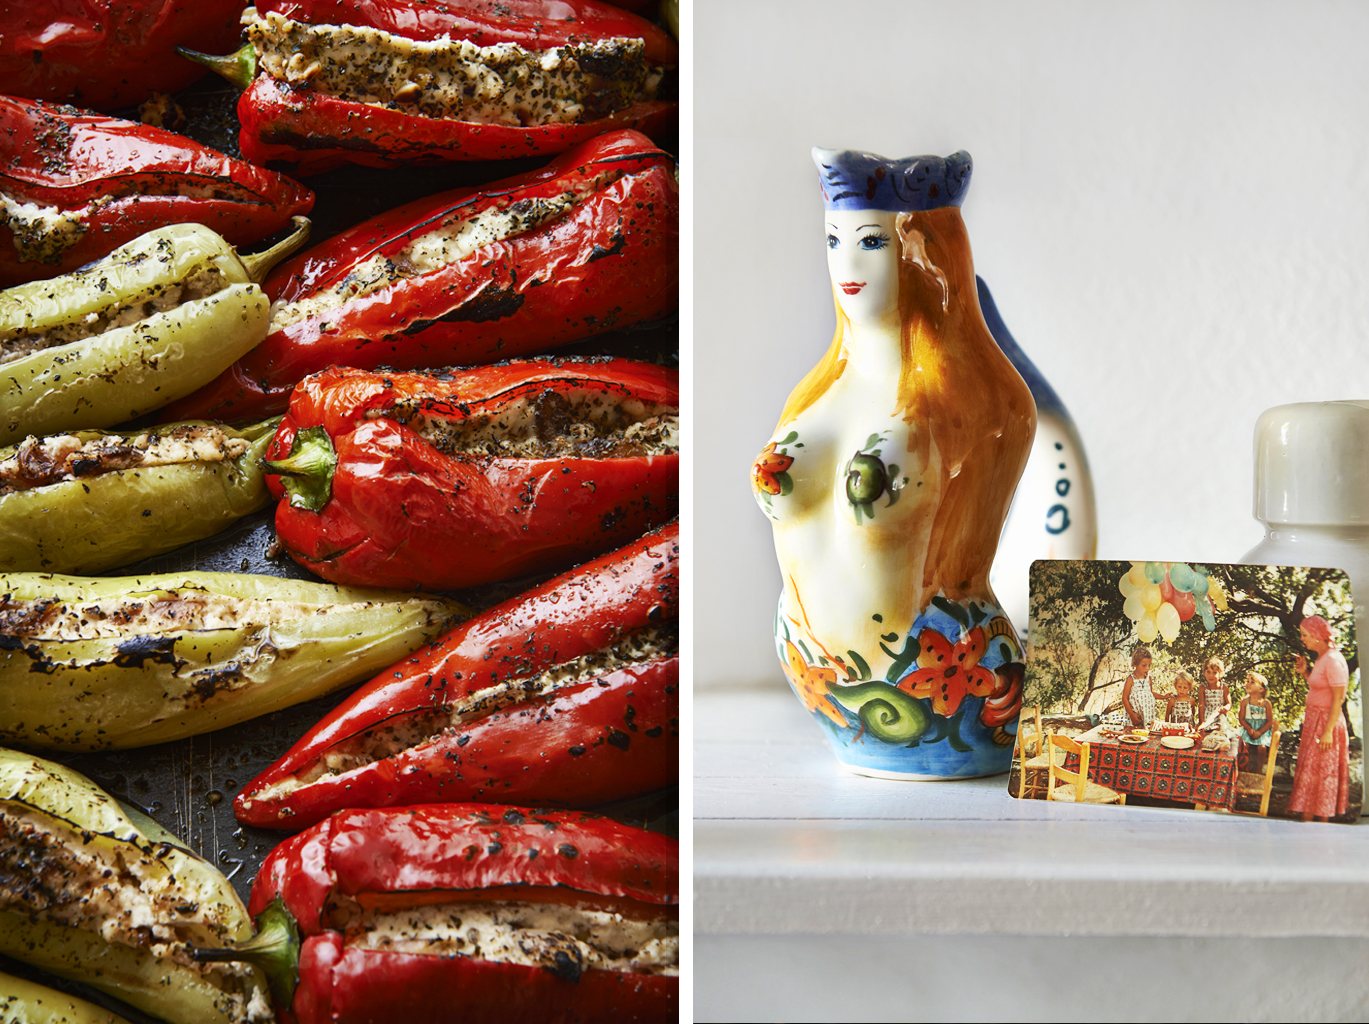 silver island photography photographer food photographer london britain uk recipe cookbook cook book ingredients travel greece sunshine bright vibrant delicious tasty method trees rustic daylight stuffed peppers pepper ricotta feta roasted jugs picture